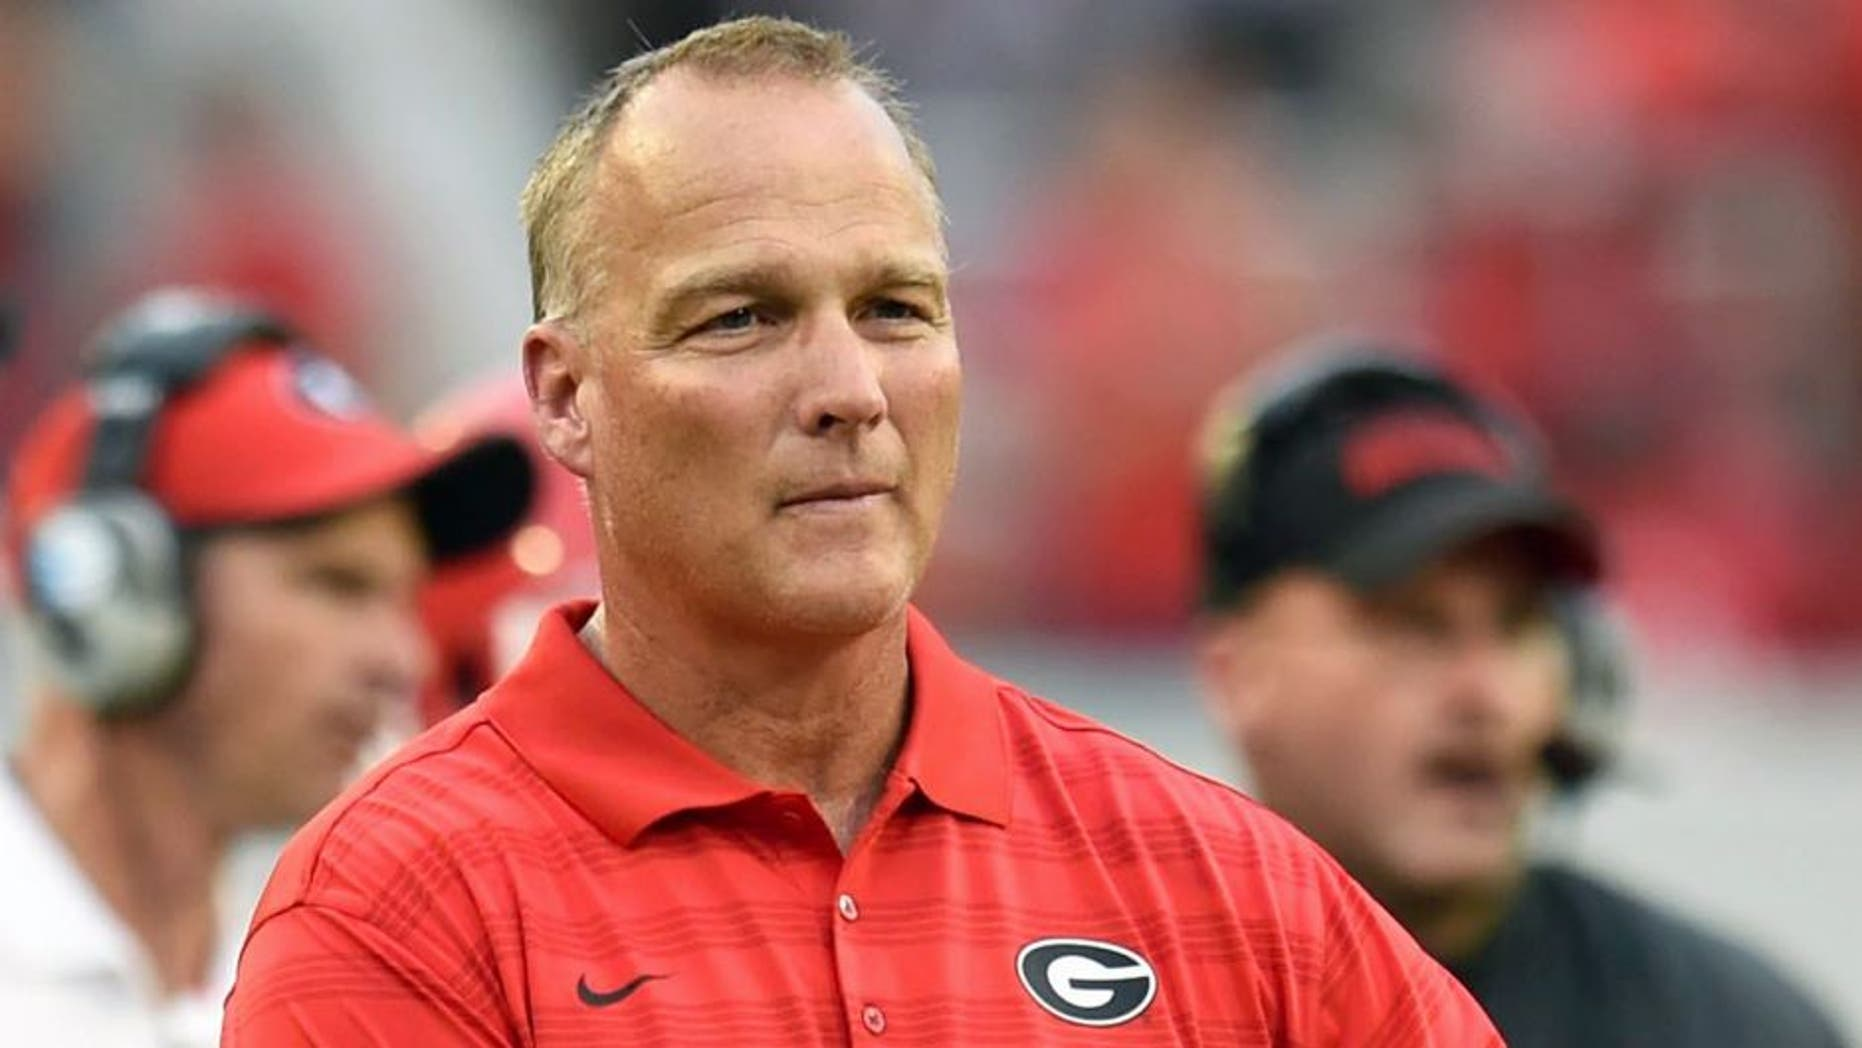 Aug 30, 2014; Athens, GA, USA; Georgia Bulldogs head coach Mark Richt shown on the sidelines during the game against the Clemson Tigers during the first half at Sanford Stadium. Georgia defeated Clemson 45-21. Mandatory Credit: Dale Zanine-USA TODAY Sports